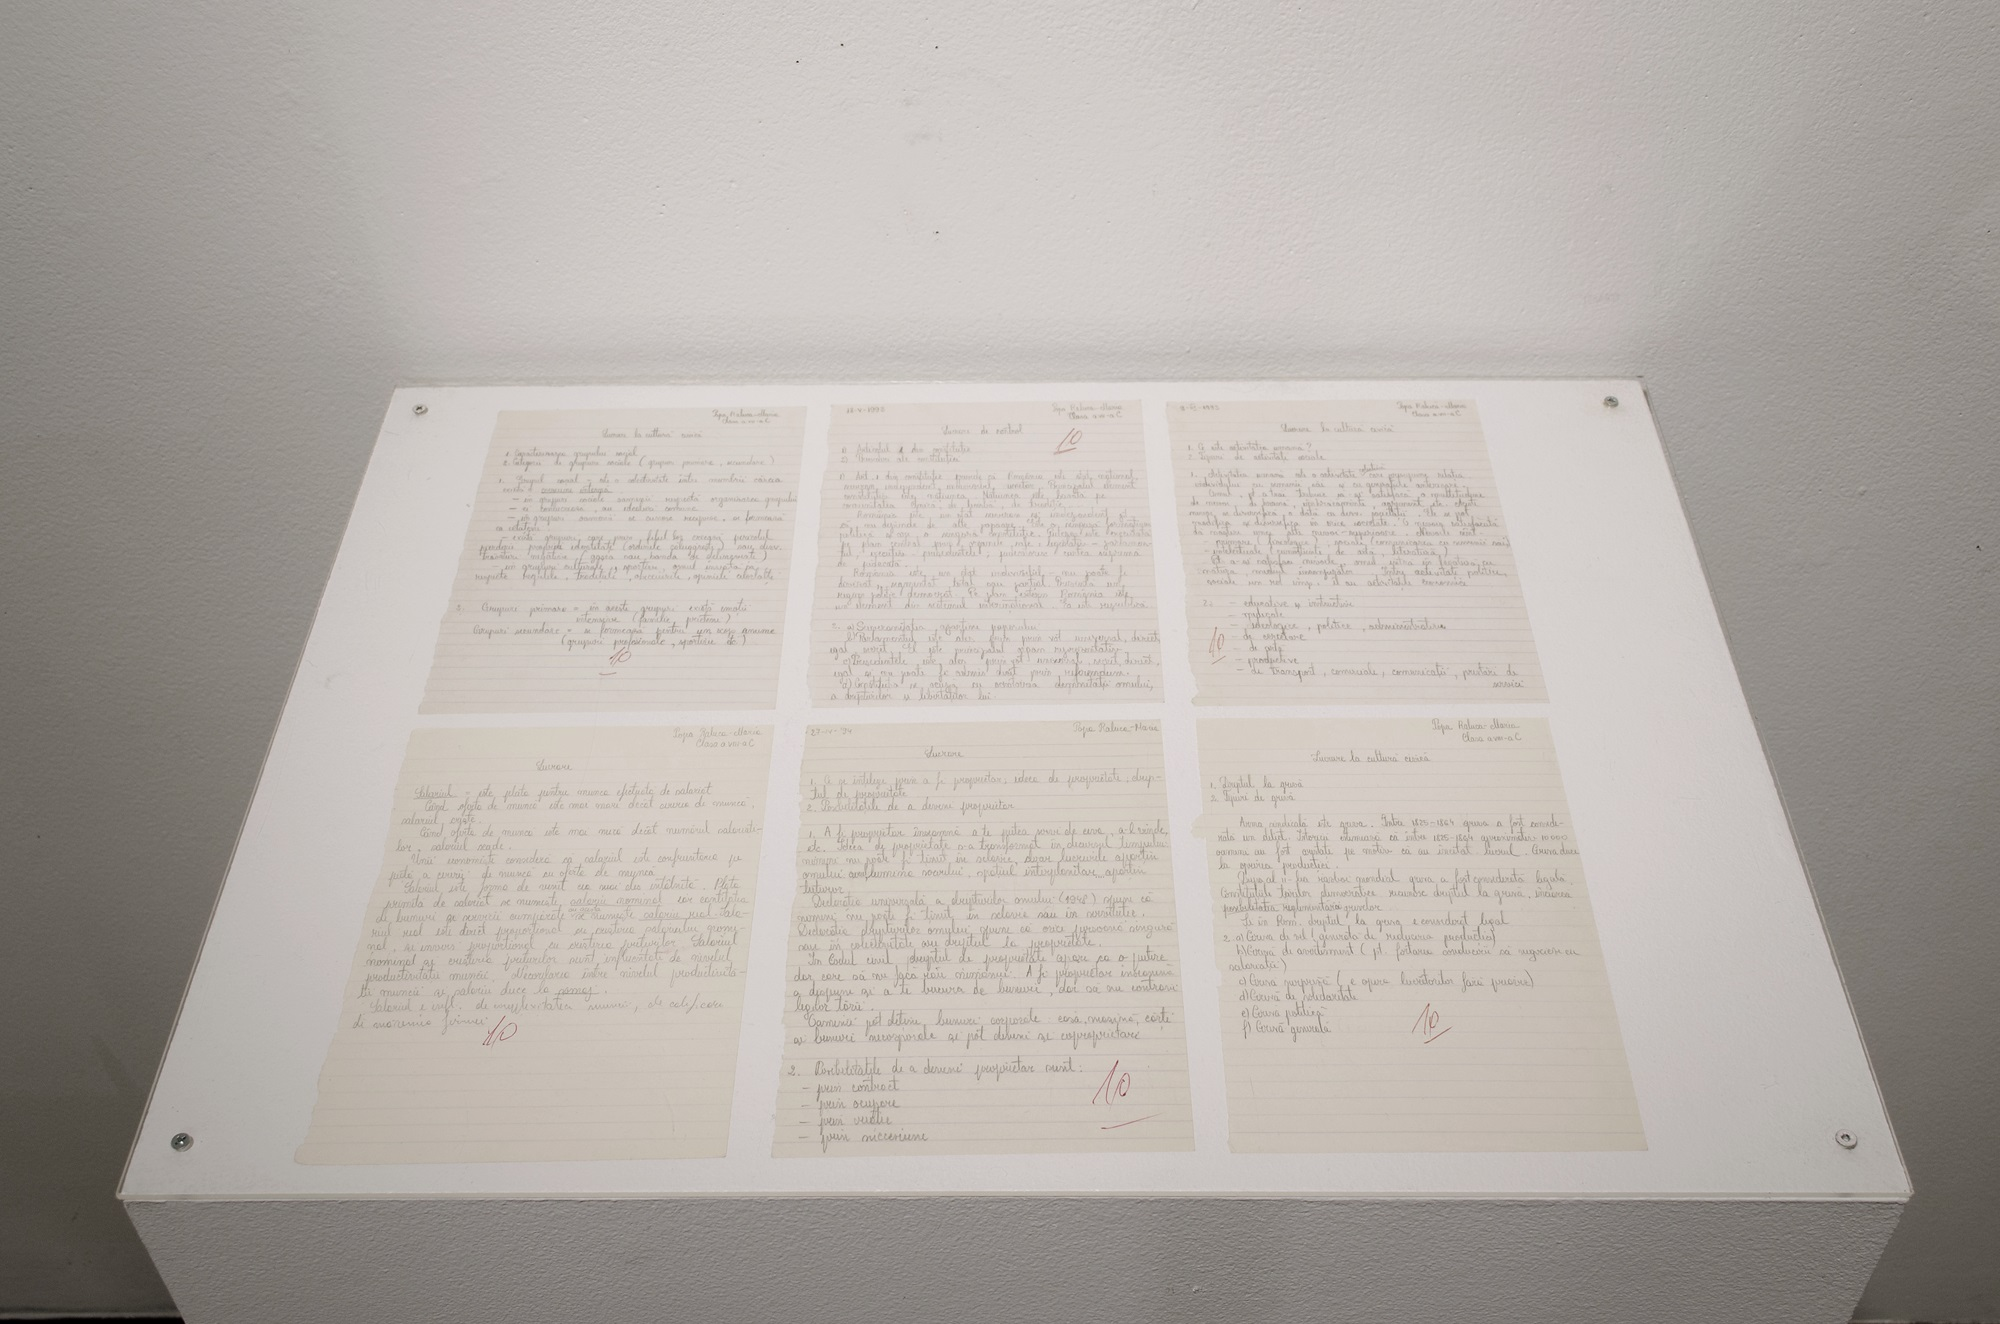 6 SCHOOL TEST PAPERS (Civic culture) (1993/2016) handwritten text on lined paper, approx. 21 x 14 cm each, Image copyright: Răzvan Anton